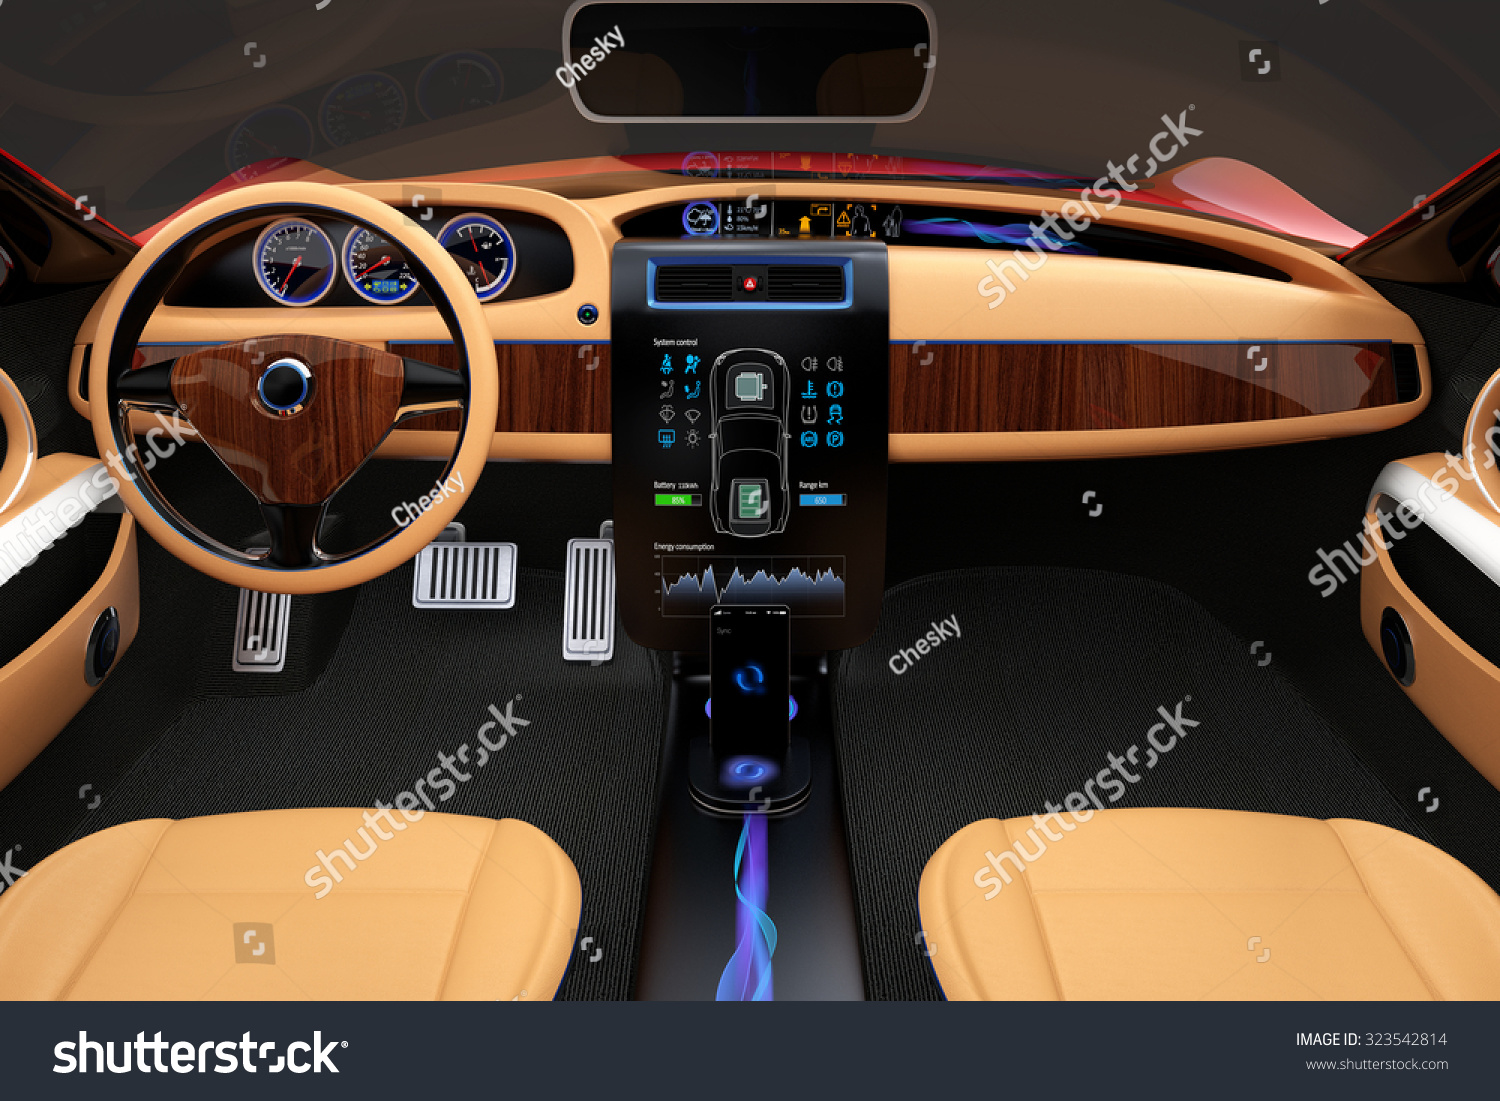 stylish electric car interior luxury wood stock illustration 323542814 shutterstock. Black Bedroom Furniture Sets. Home Design Ideas